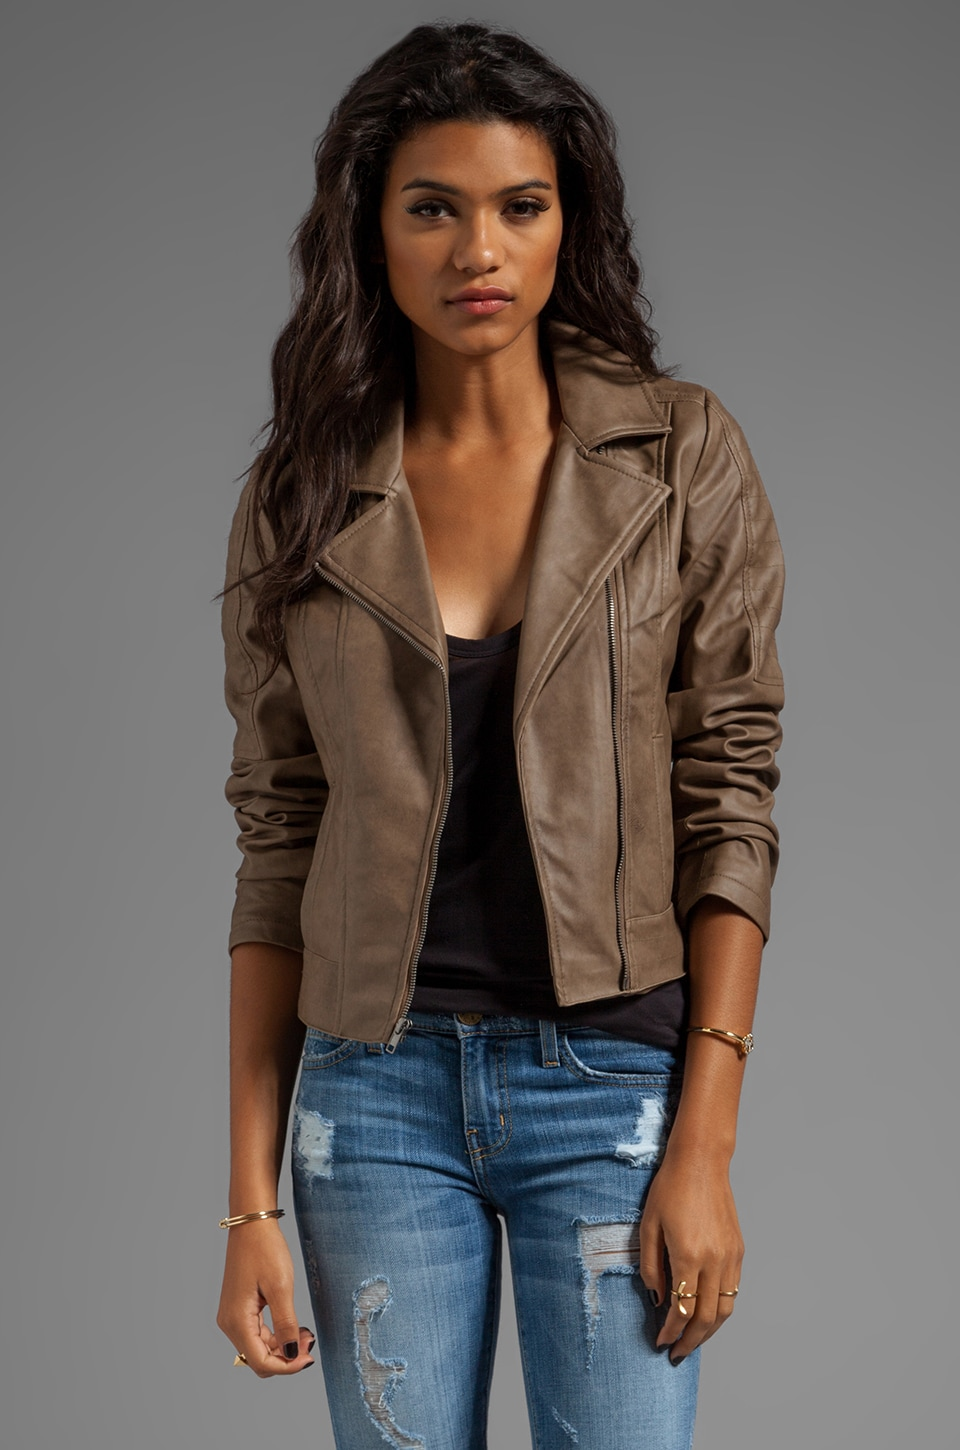 BB Dakota Estela 2 Tone PU Leather Jacket in Walnut